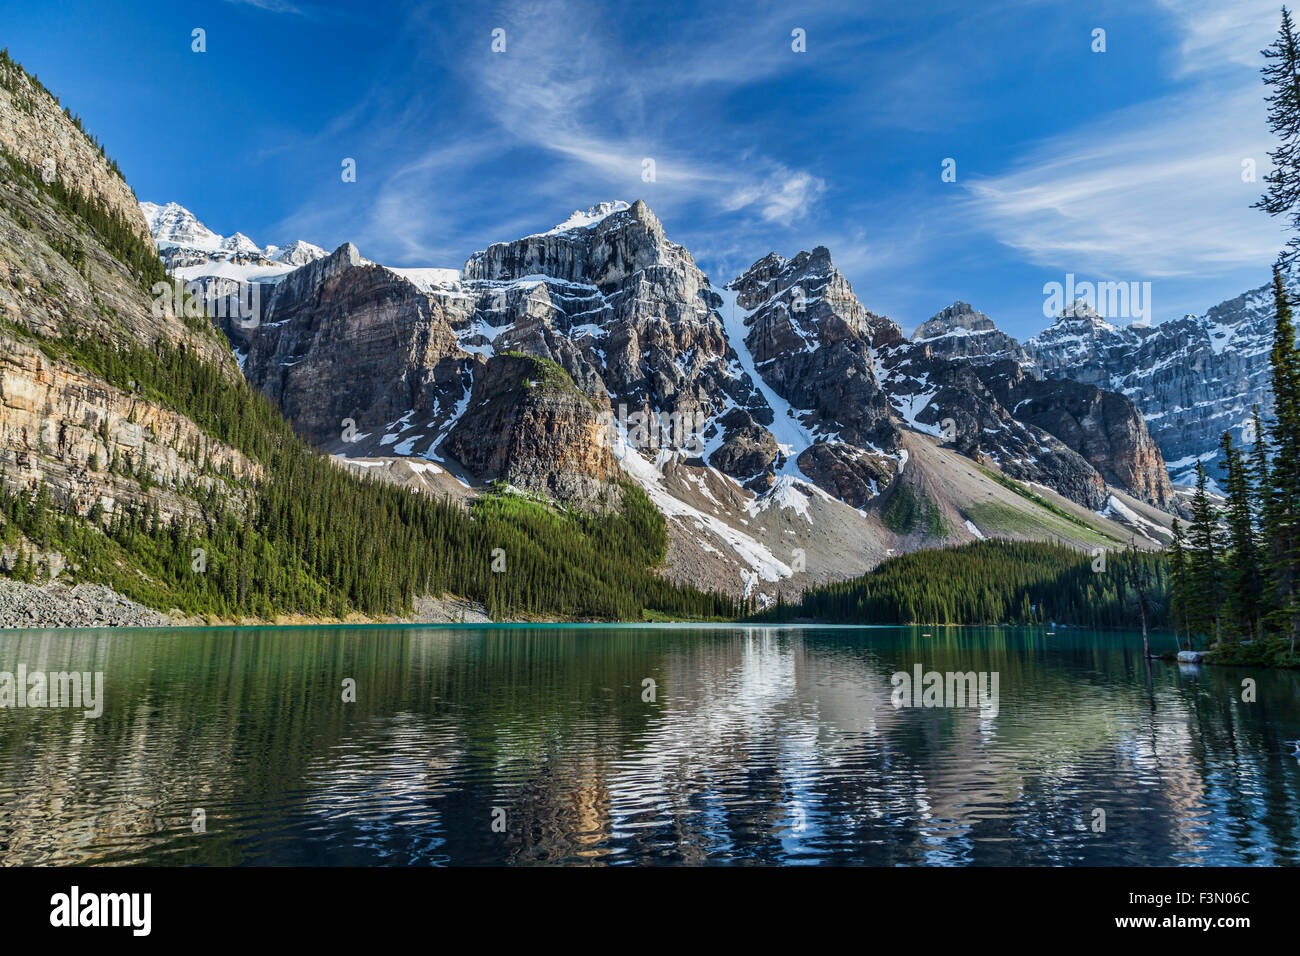 One of the many iconic views of Moraine Lake in Banff. - Stock Image